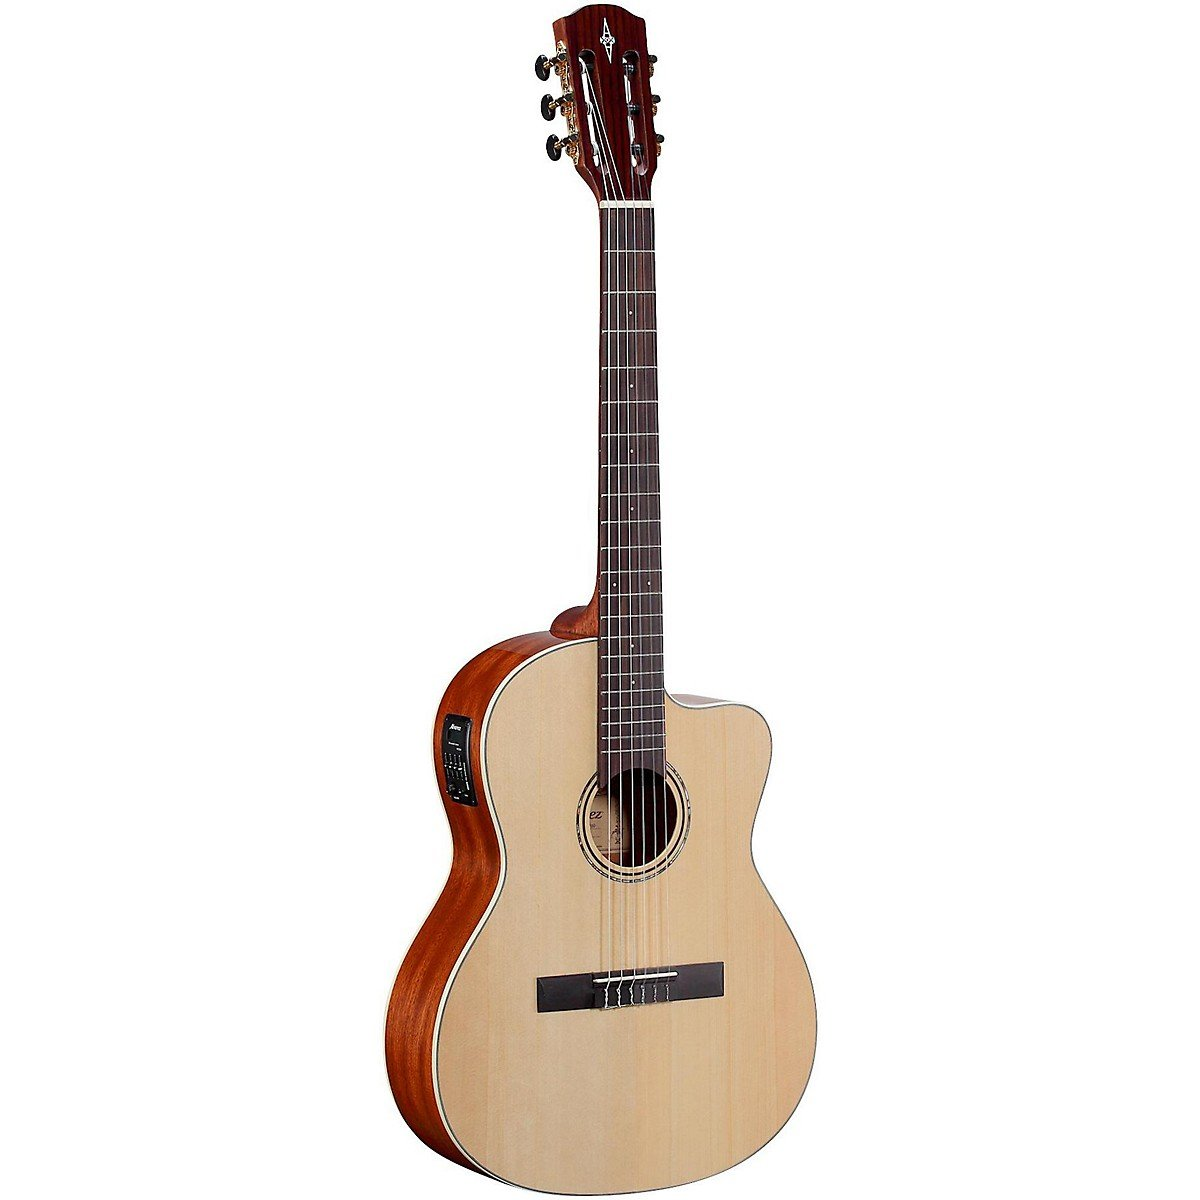 Alvarez - Guitarra acústica RC26HCE con funda incluida, color madera natural: Amazon.es: Instrumentos musicales